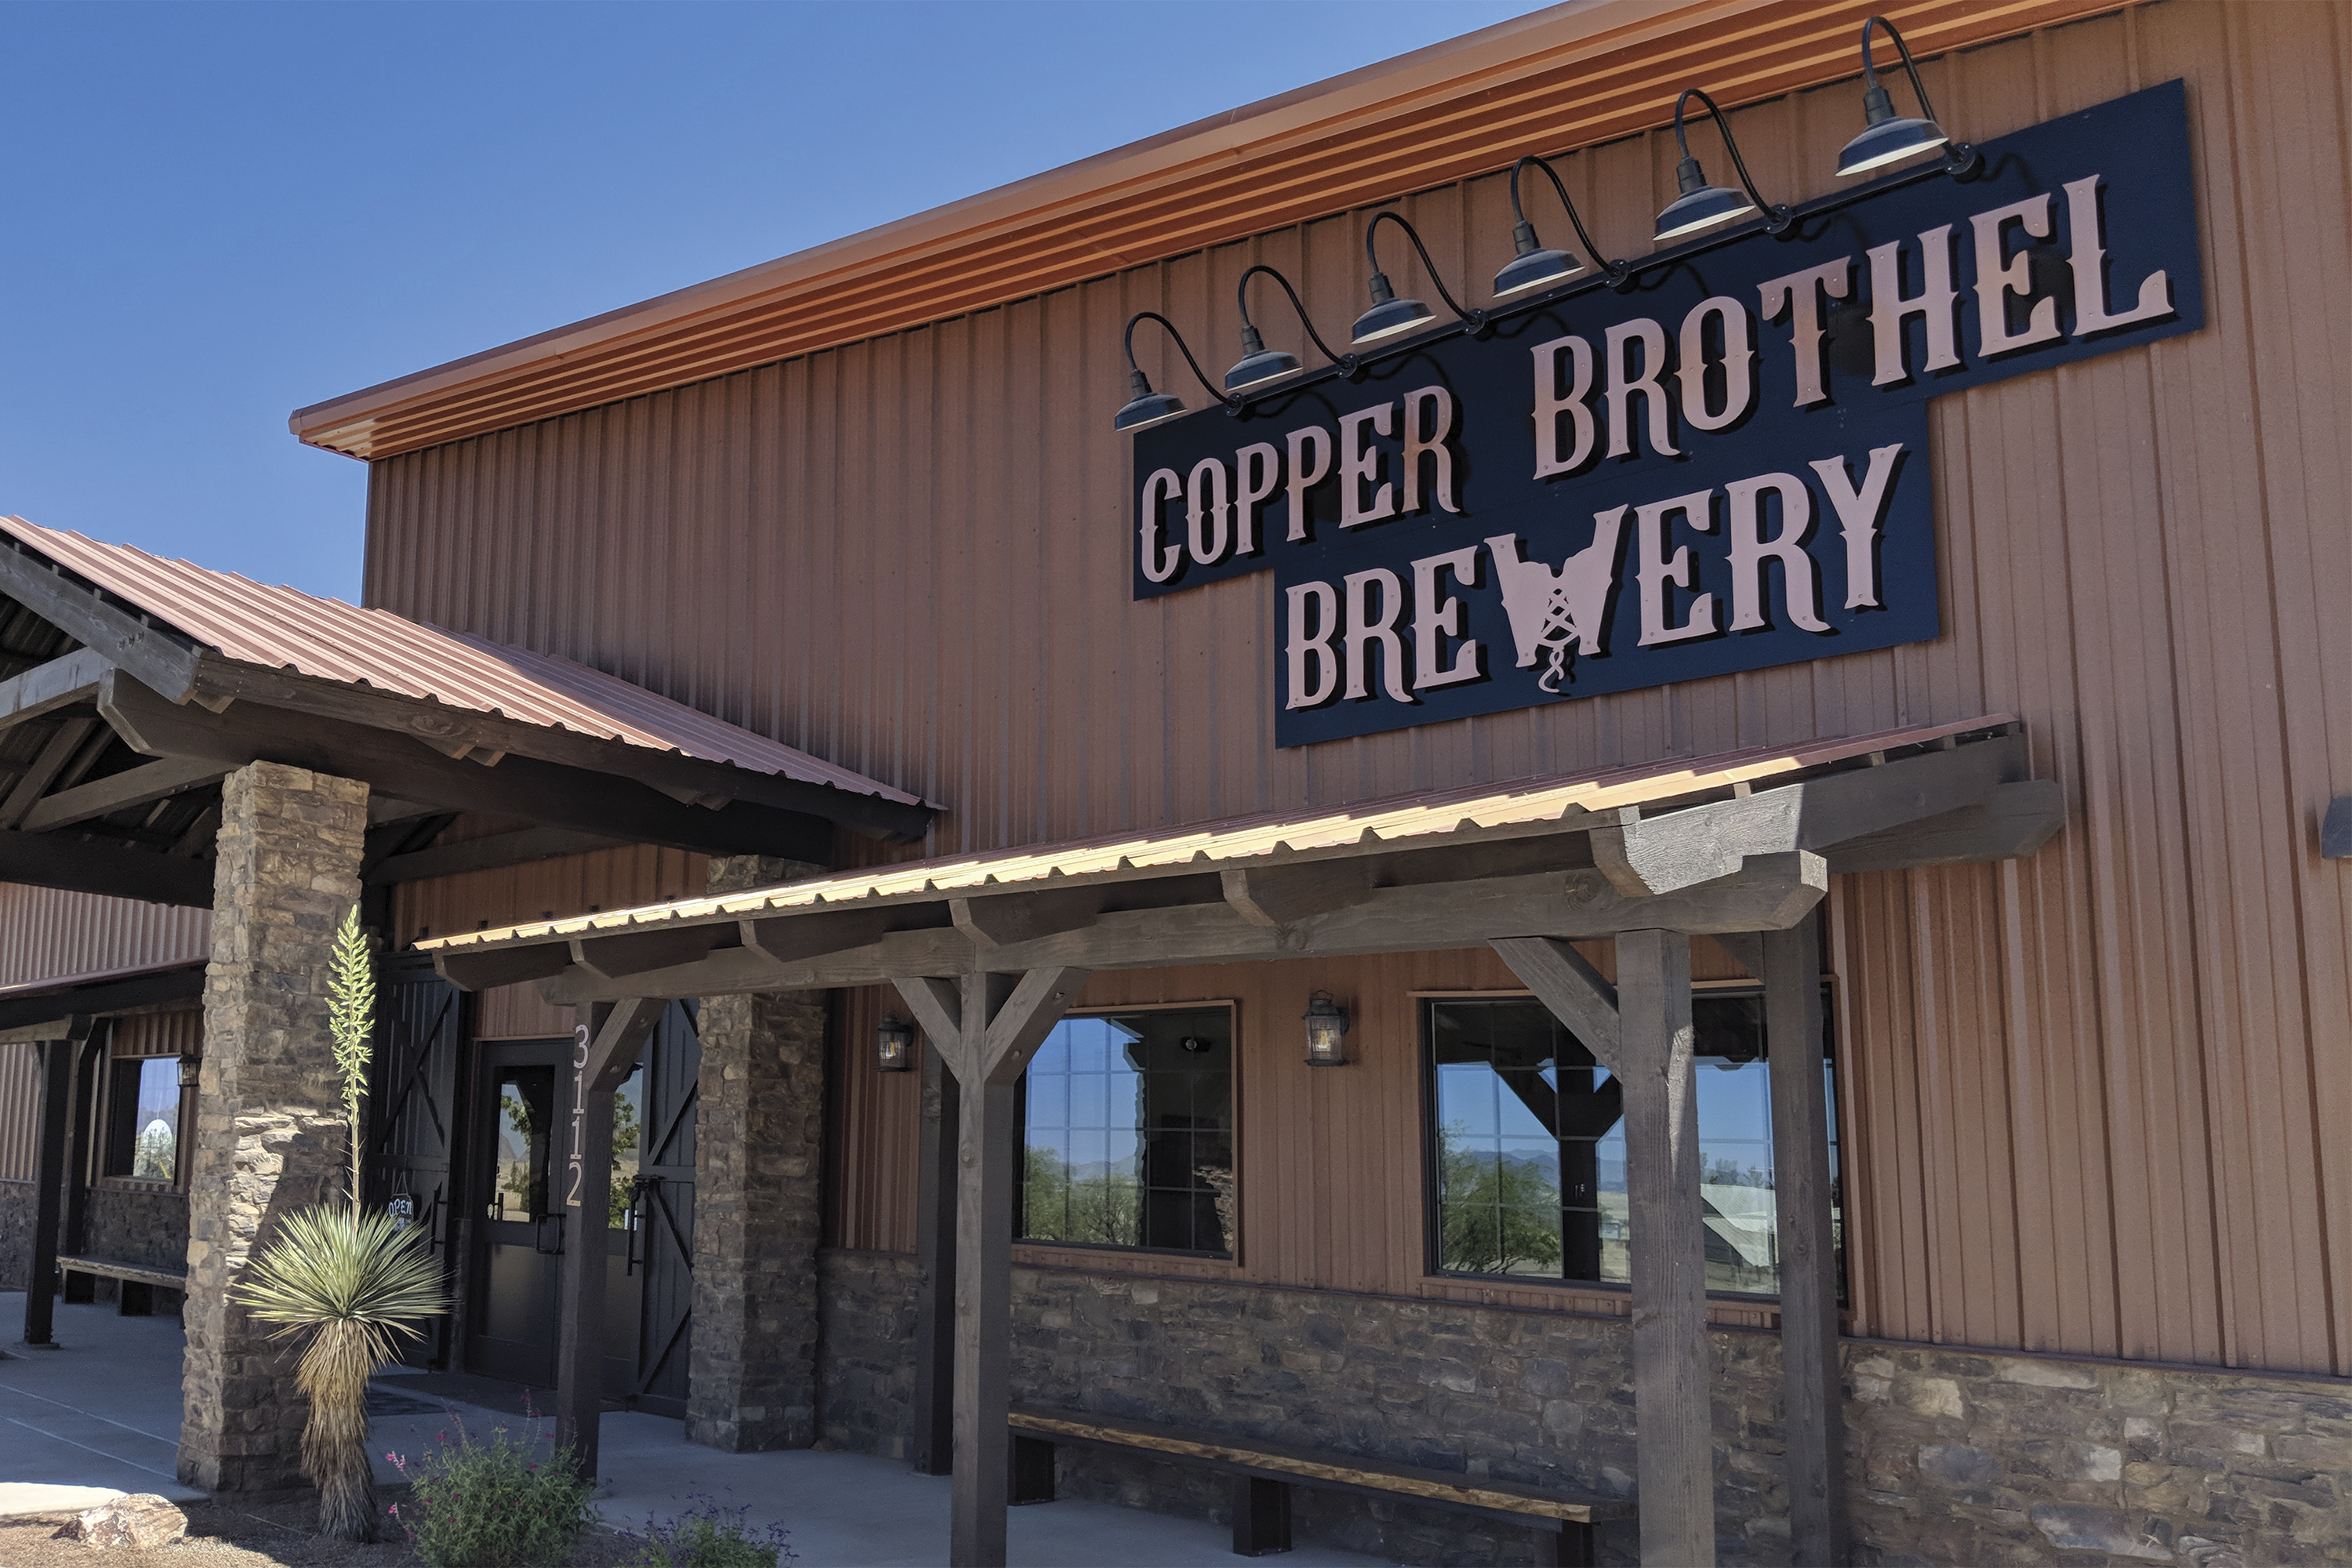 Copper Brothel Brewery; Photo courtesy Copper Brothel Brewery